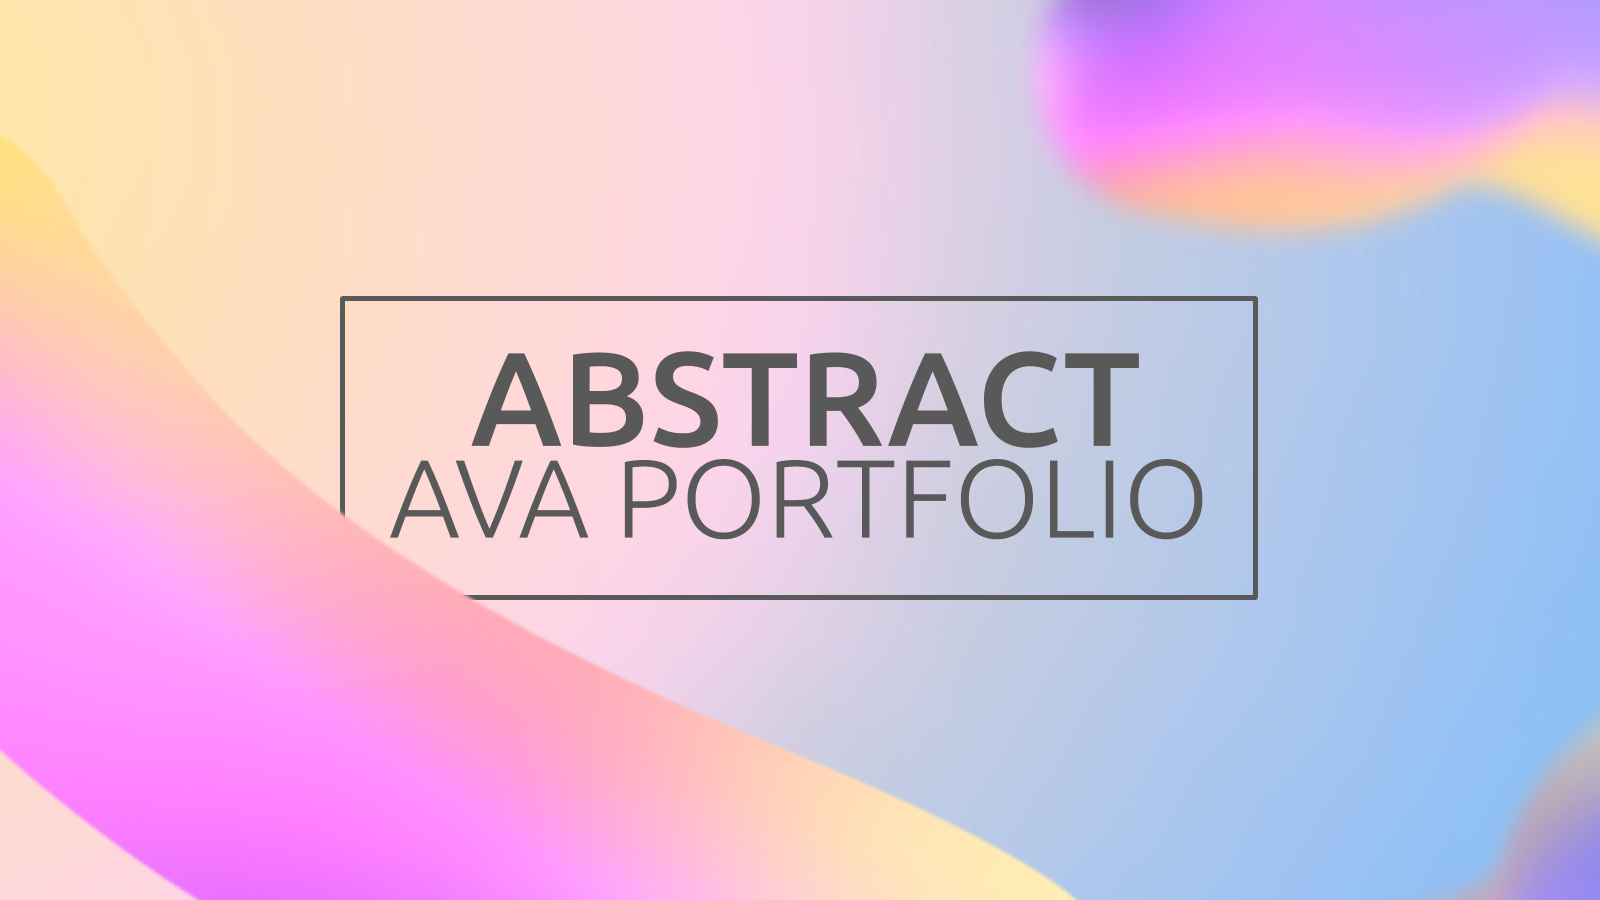 Abstract Ava Portfolio presentation template